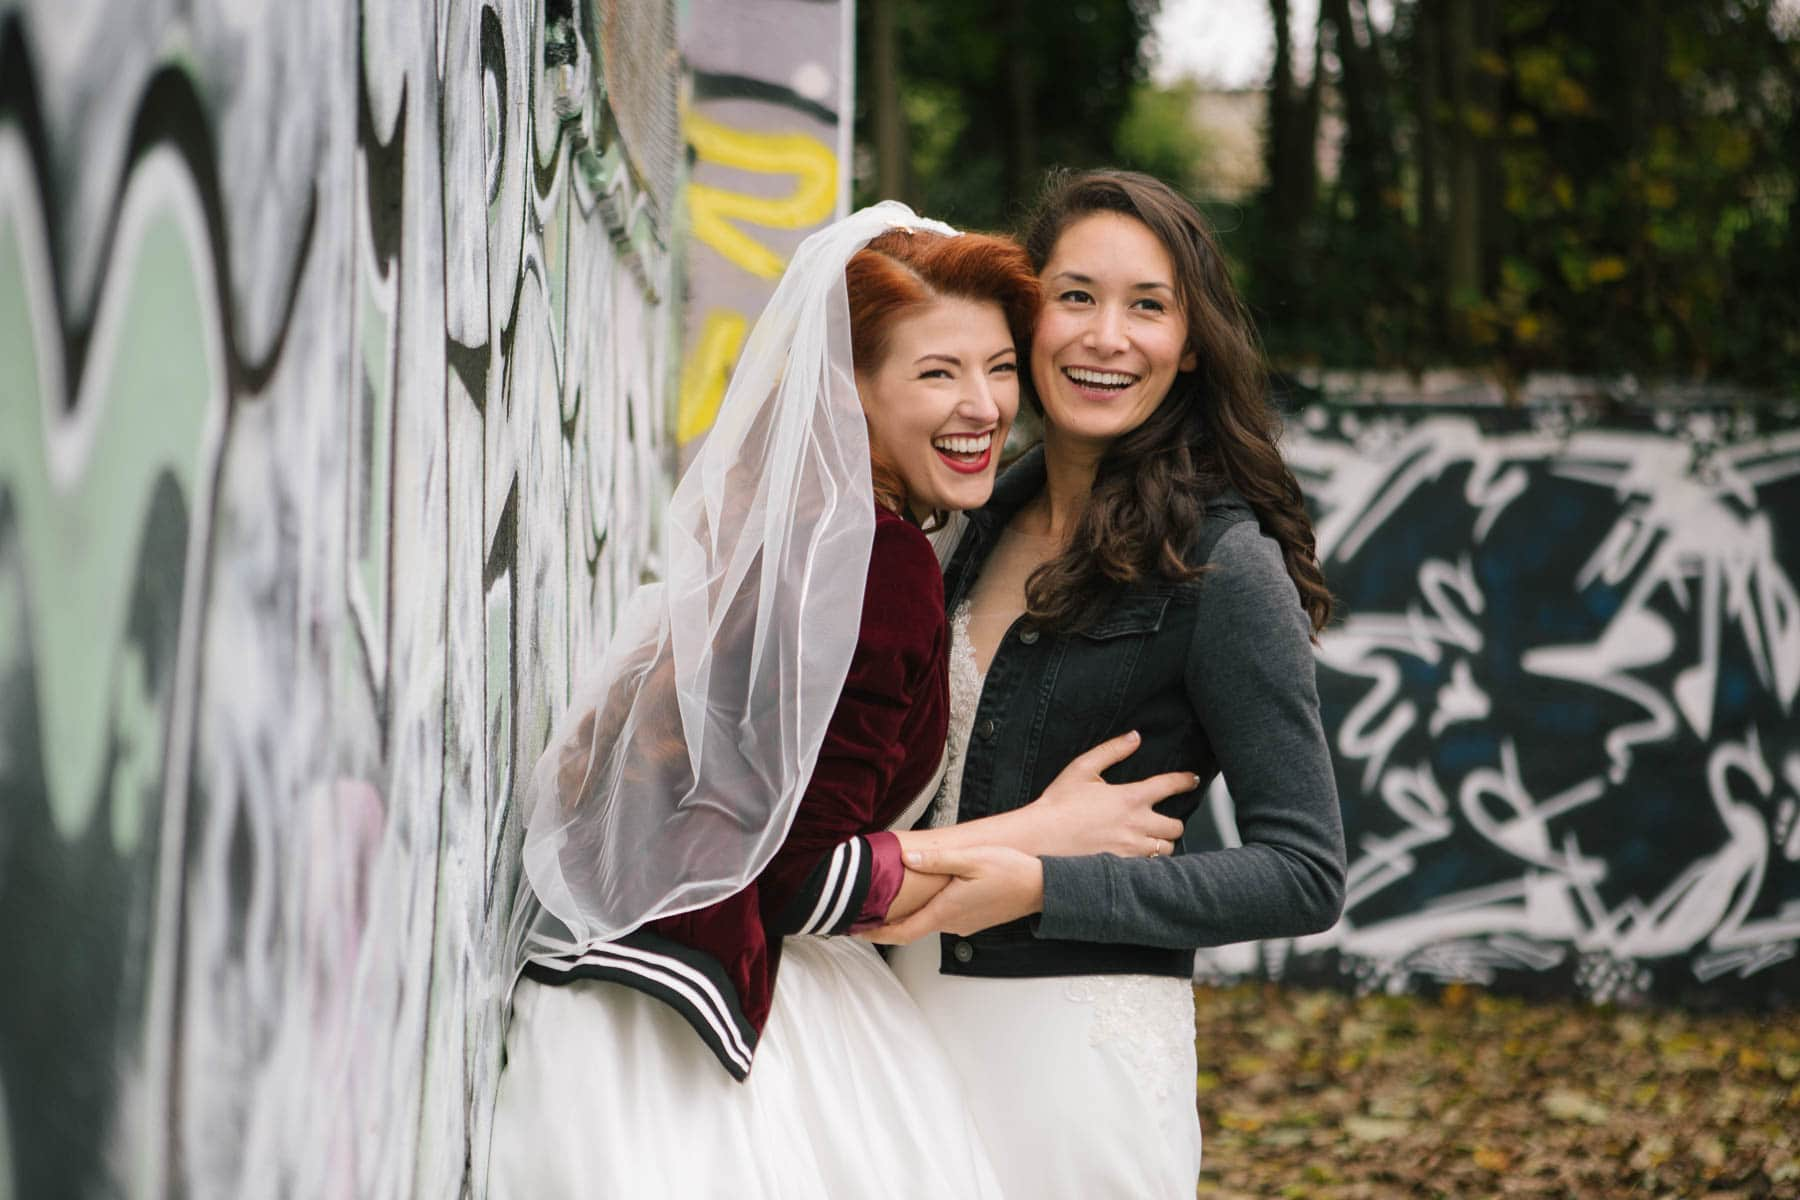 Jessica leans into her wife and the couple laugh, while posing against a graffiti wall in Brighton